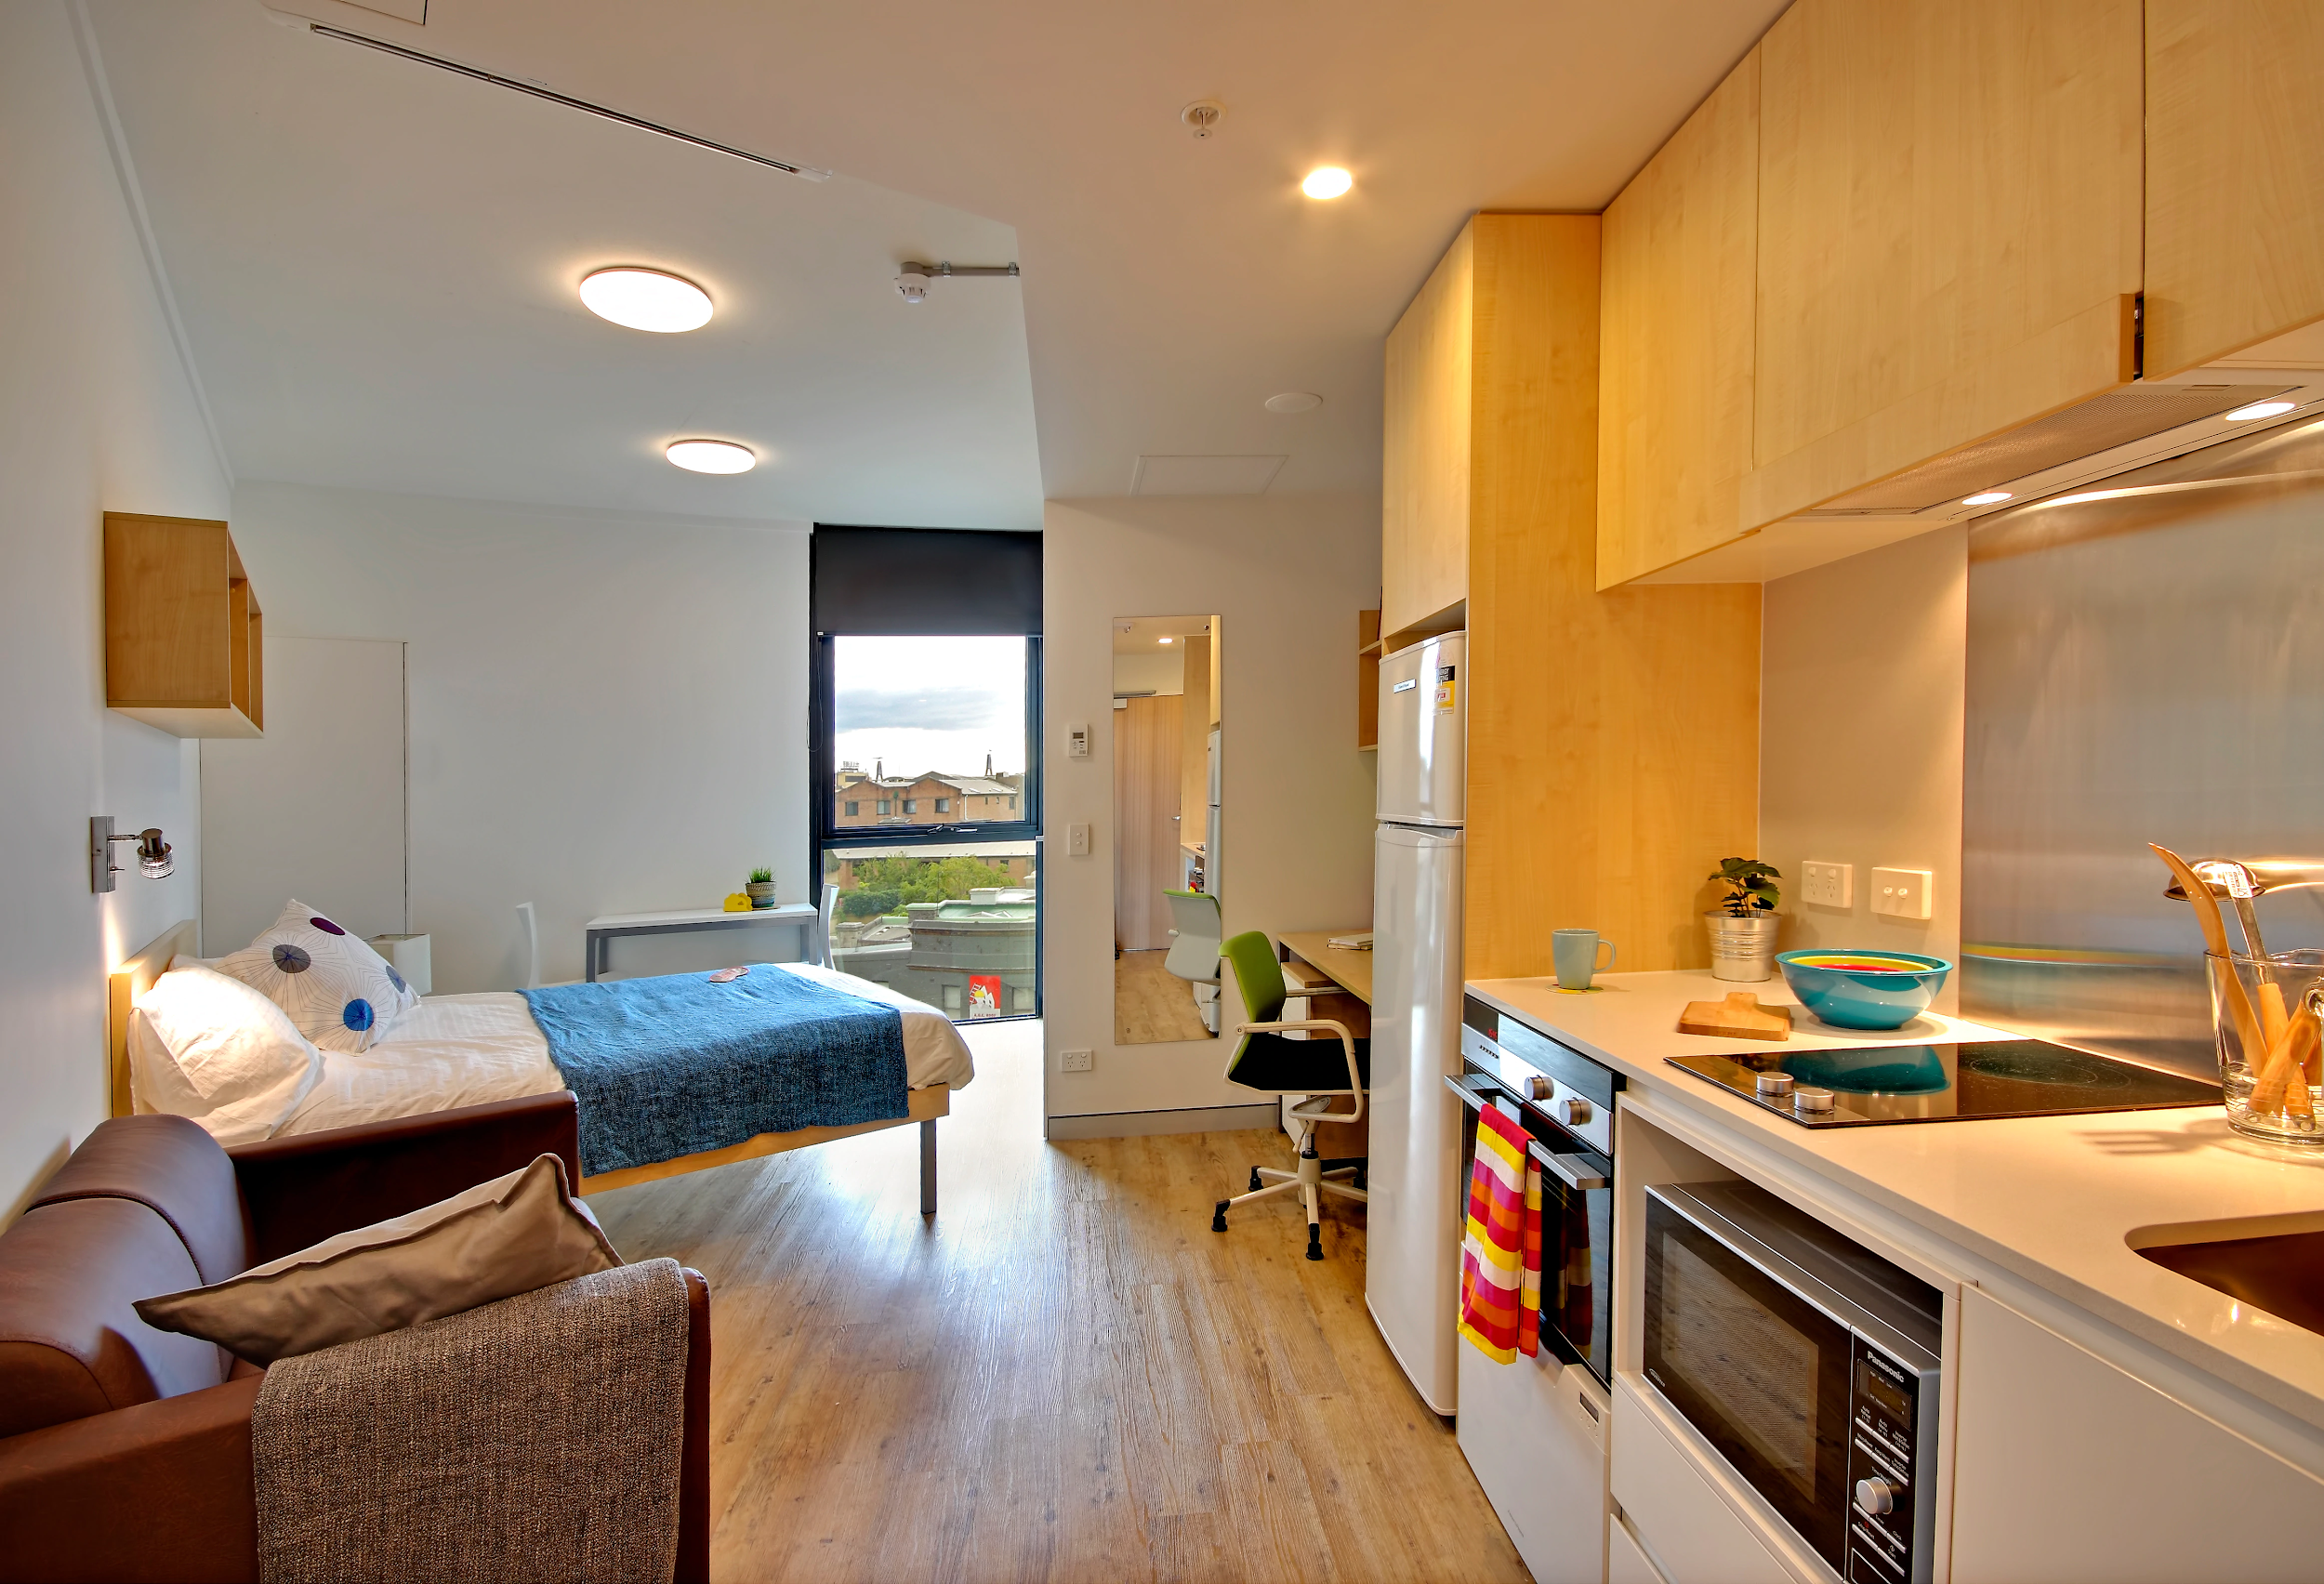 Student Accommodations: 7 Things One Must Check Out